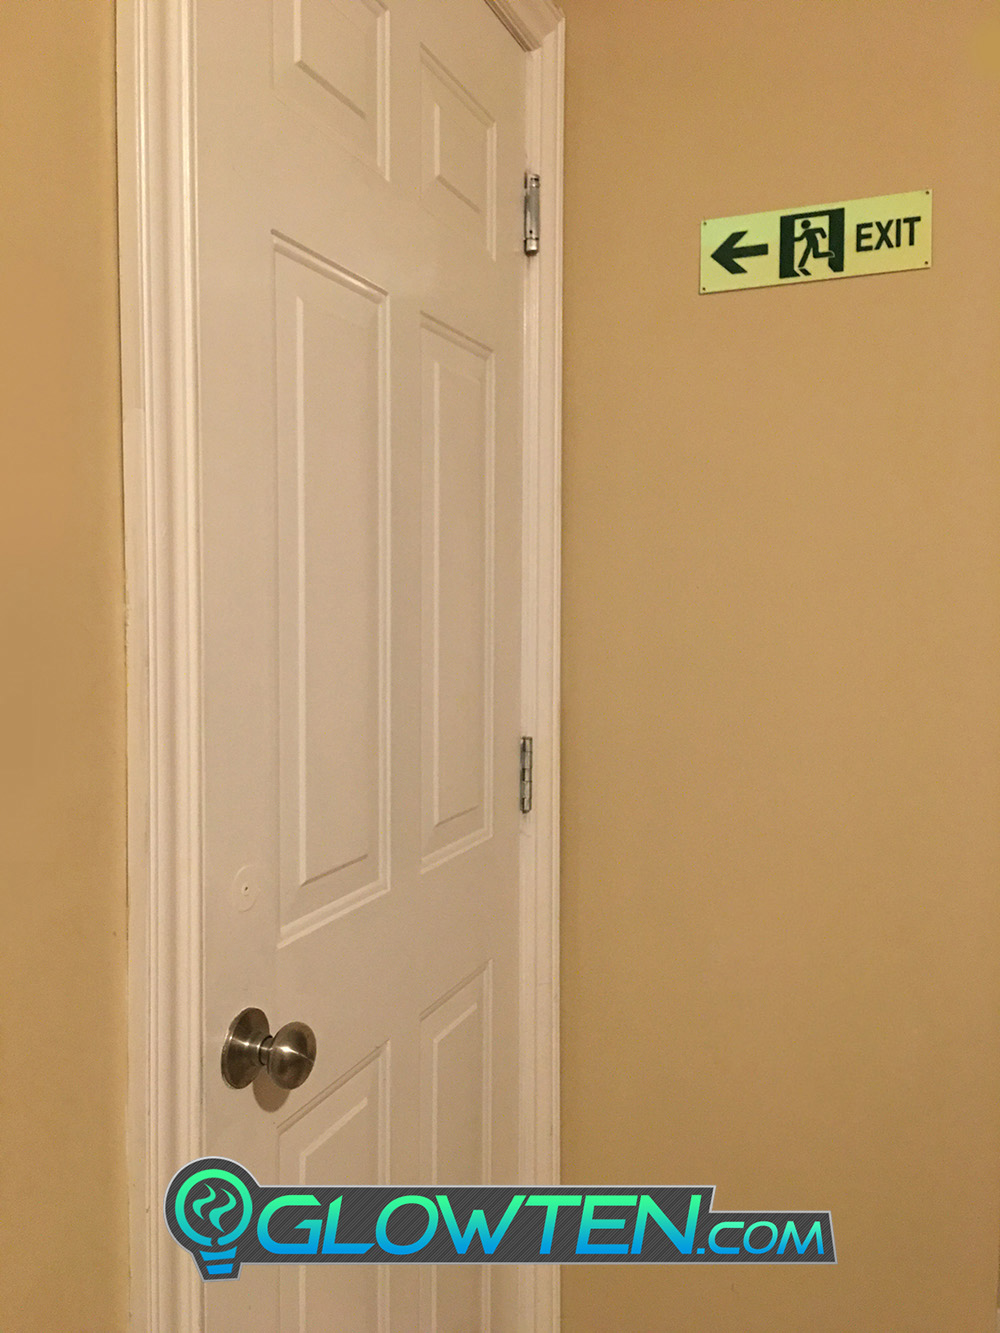 GLOWTEN.com - Glow in the Dark FIRE EXIT ESCAPE SIGN Left Eco Friendly Photoluminescent Material Green Absorbs photons from any light source and then this stored energy is released in the dark, resulting in the glowing effect  picture photo cap preview pic image search 5